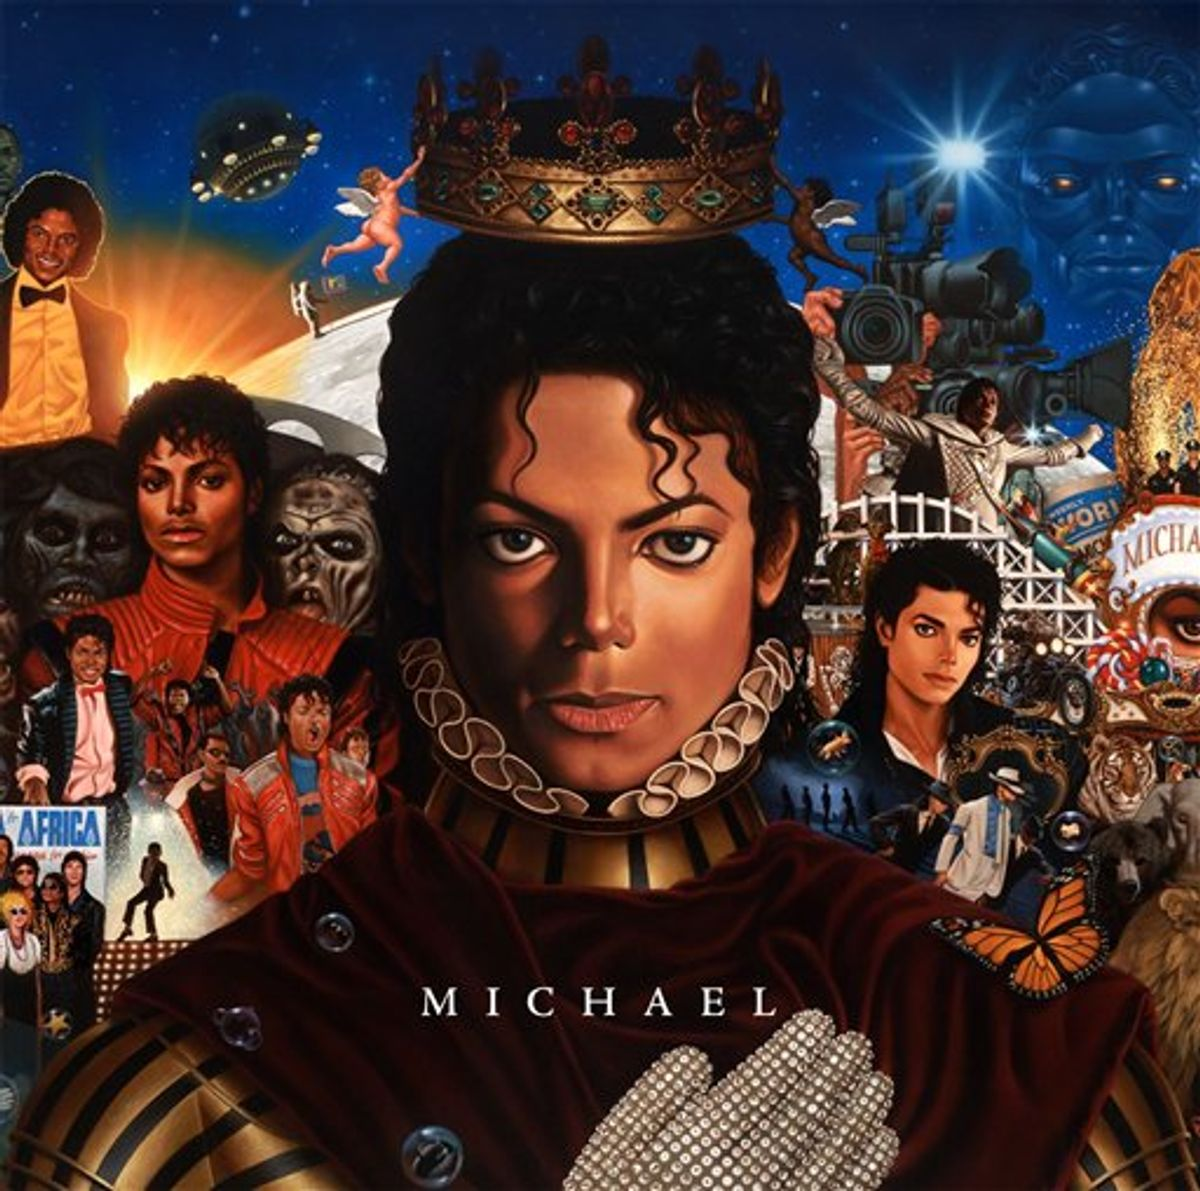 """In this CD cover image released by Epic Records, newly completed recordings from Michael Jackson entitled """"Michael,"""" is shown. The CD will be released on Dec.14. (AP Photo/Epic Records)  (AP)"""